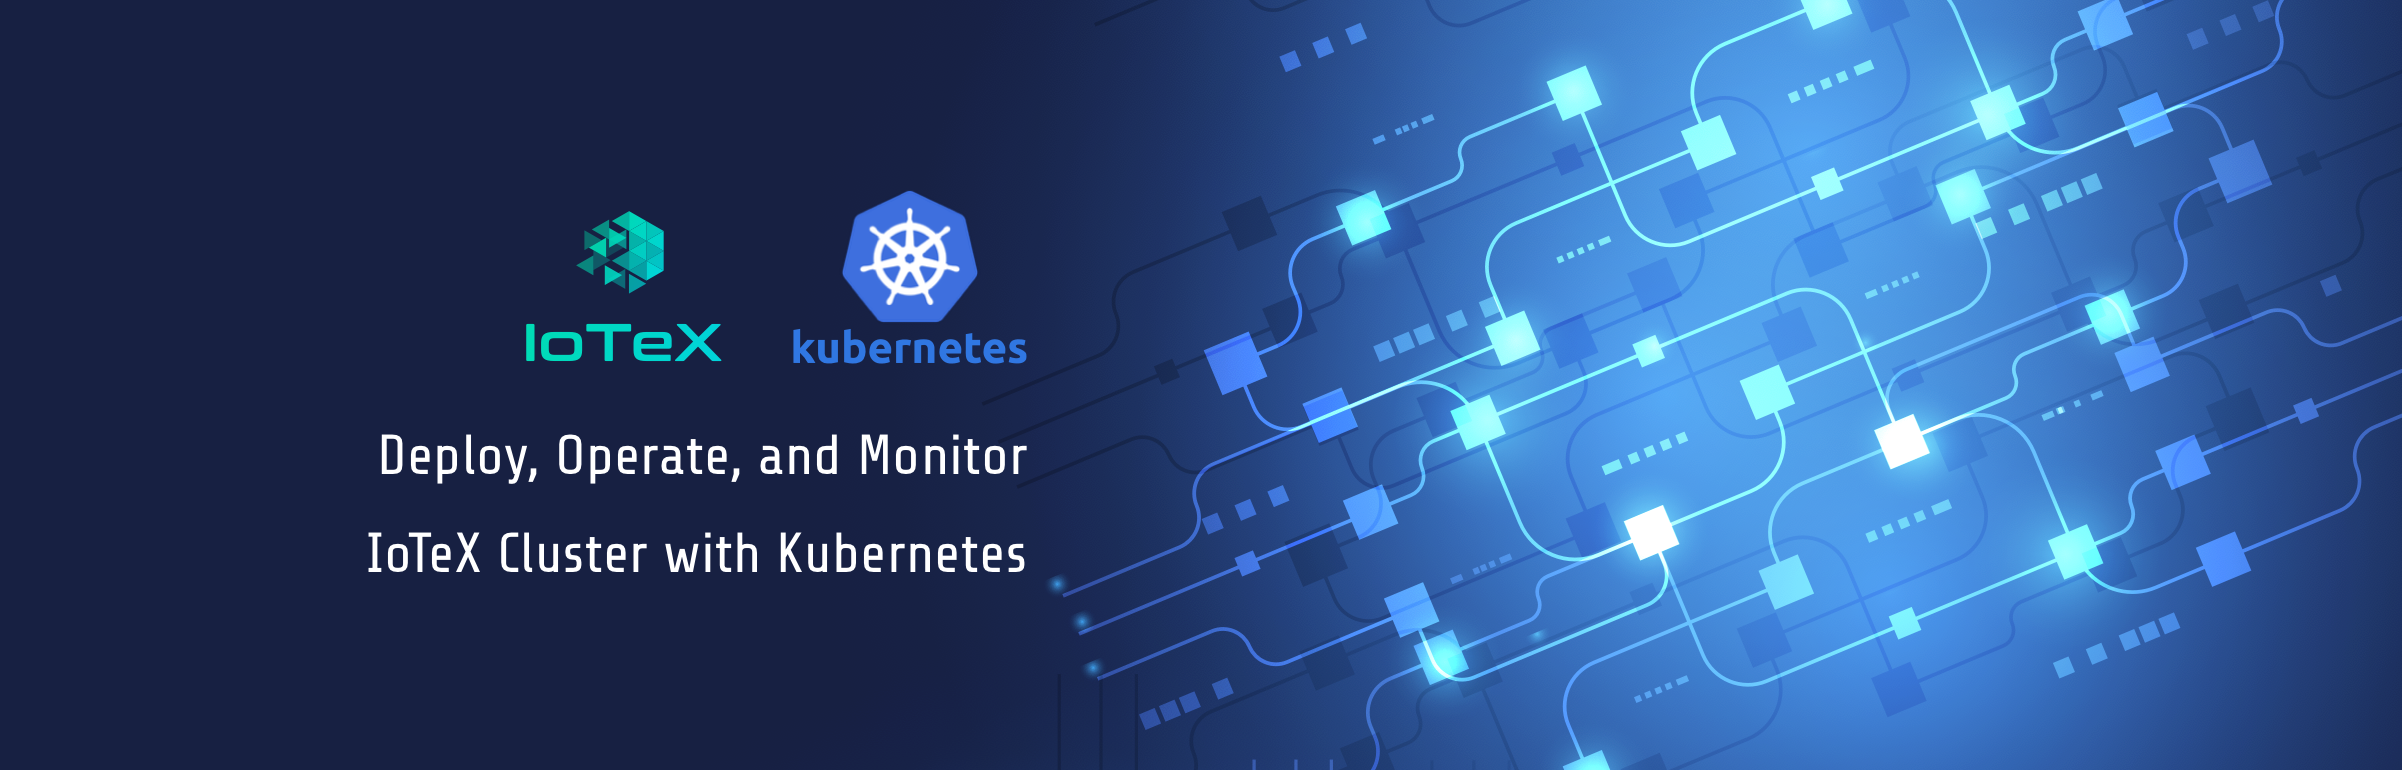 /deploy-operate-and-monitor-iotex-cluster-with-kubernetes-76a2cc547459 feature image